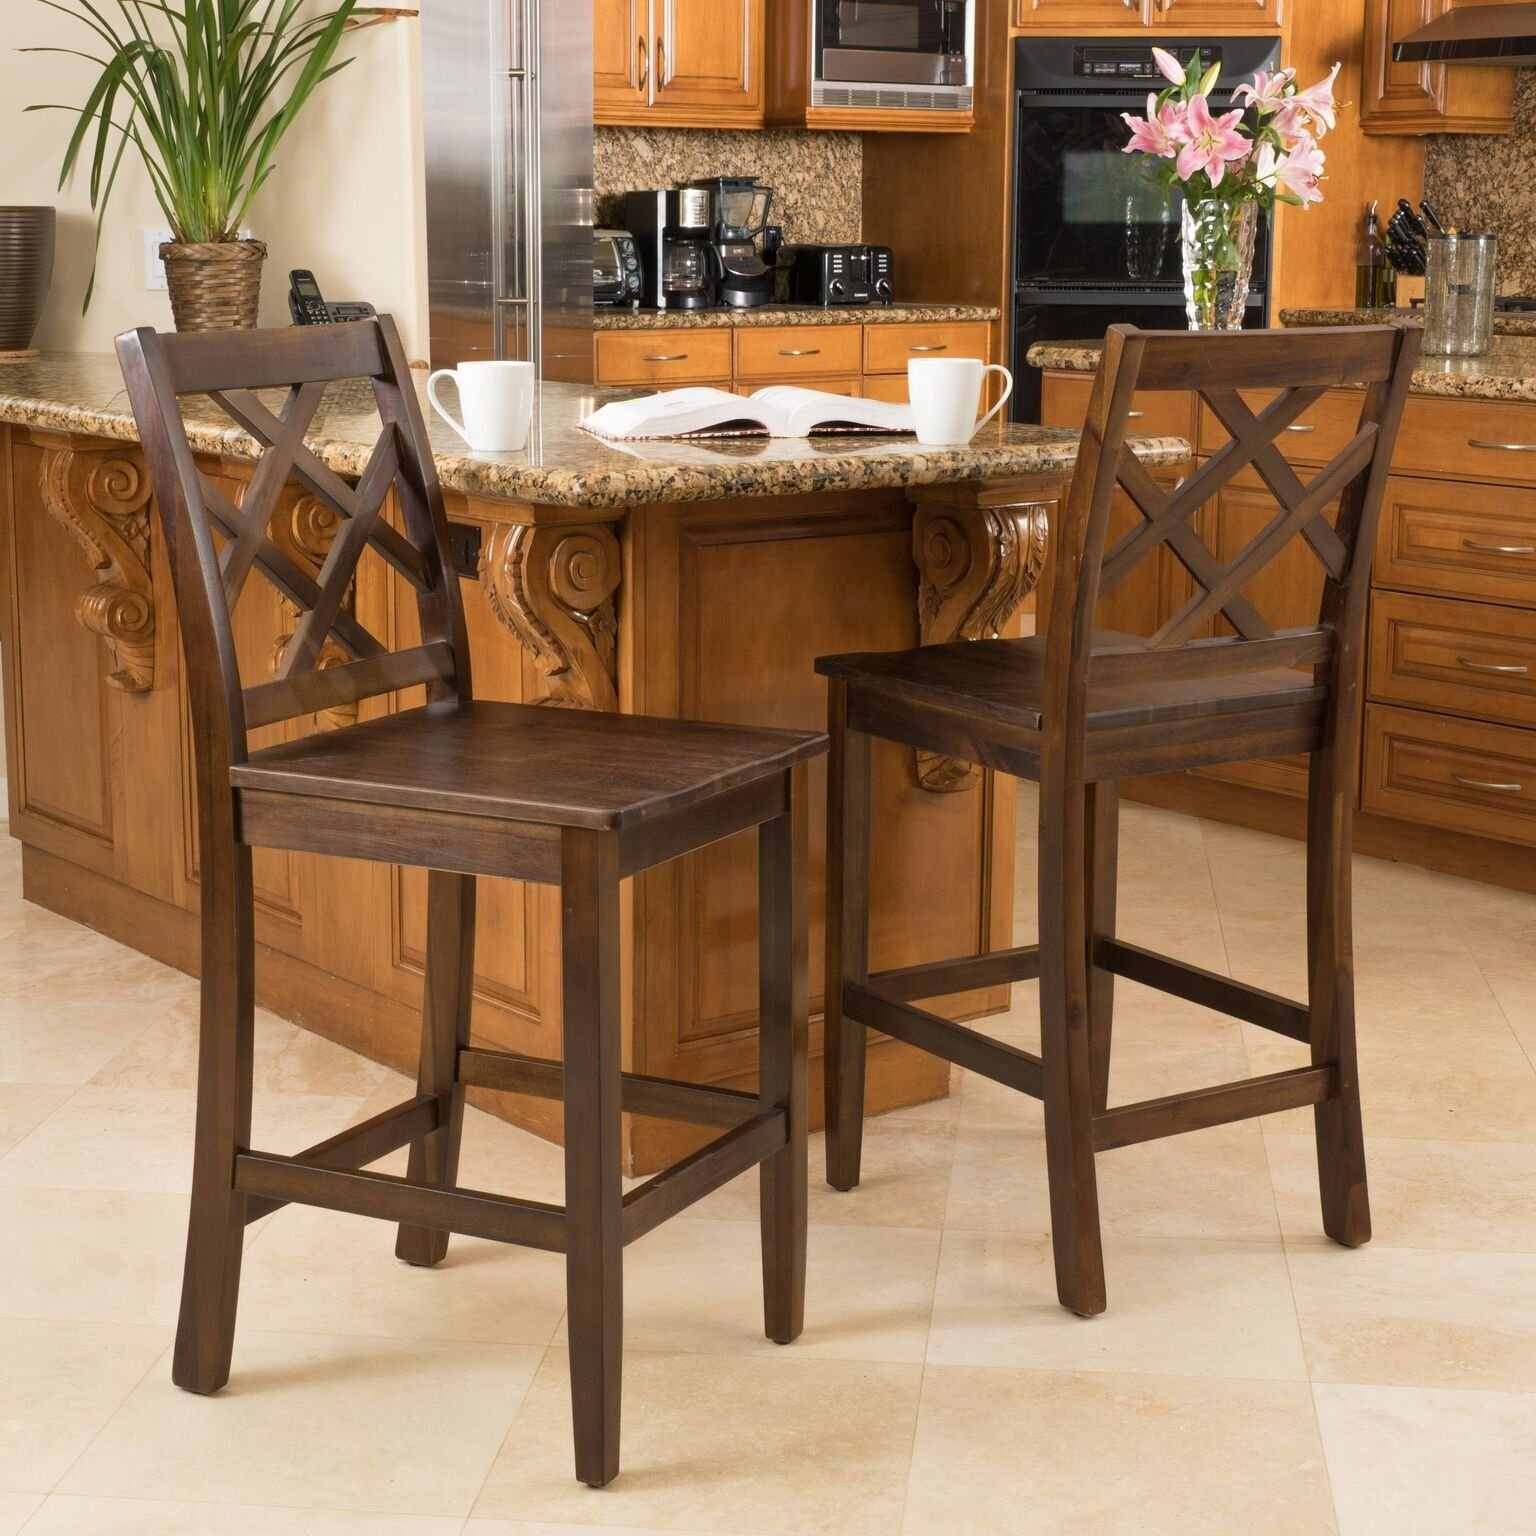 Scotsman Brown Wood Counter Stools (Set of 2)